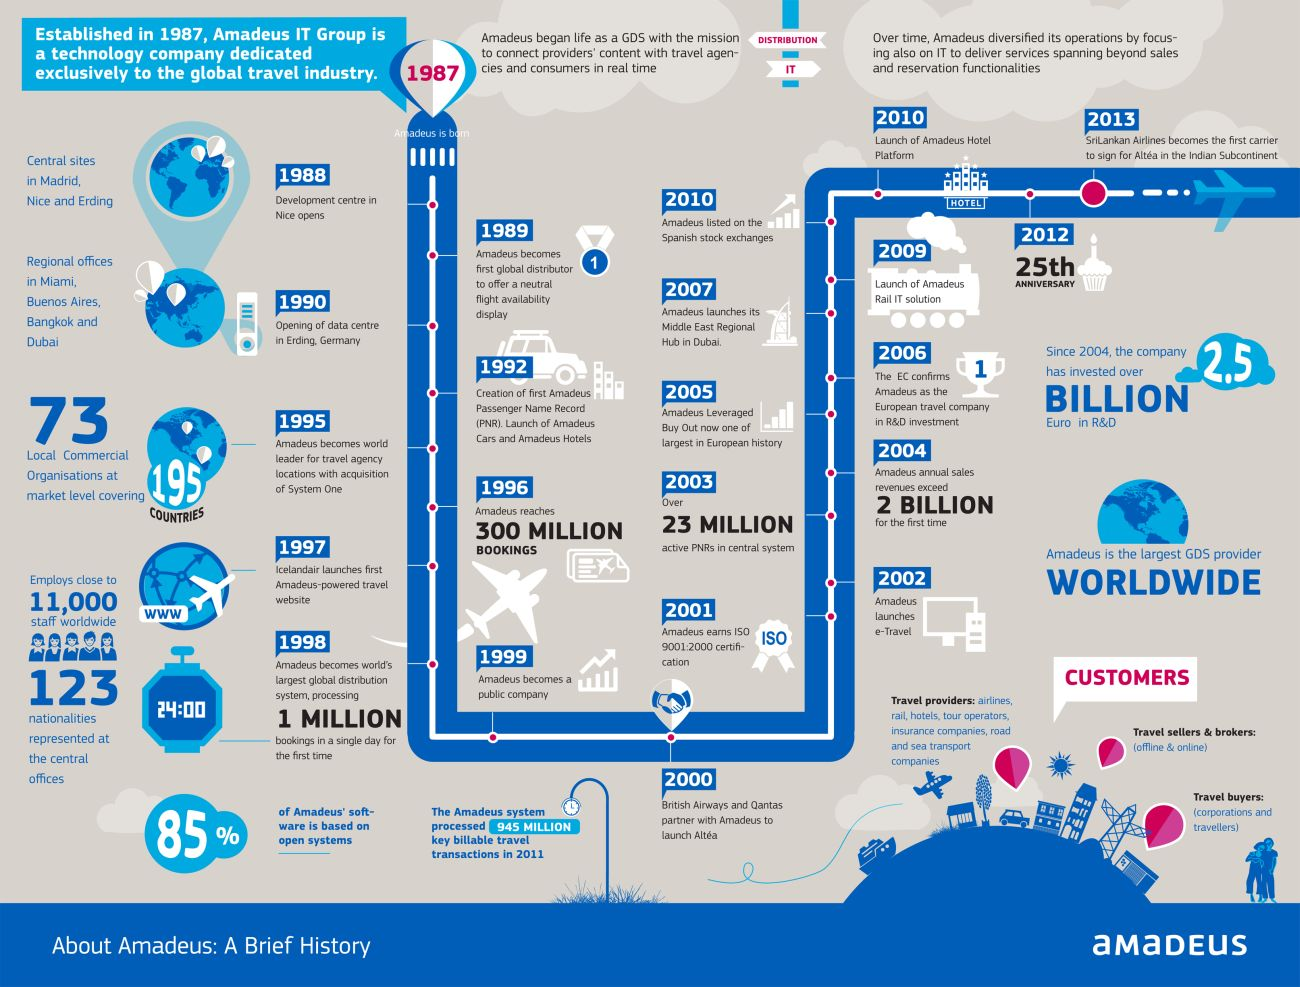 La storia di Amadeus, your technology partner, in una infografica